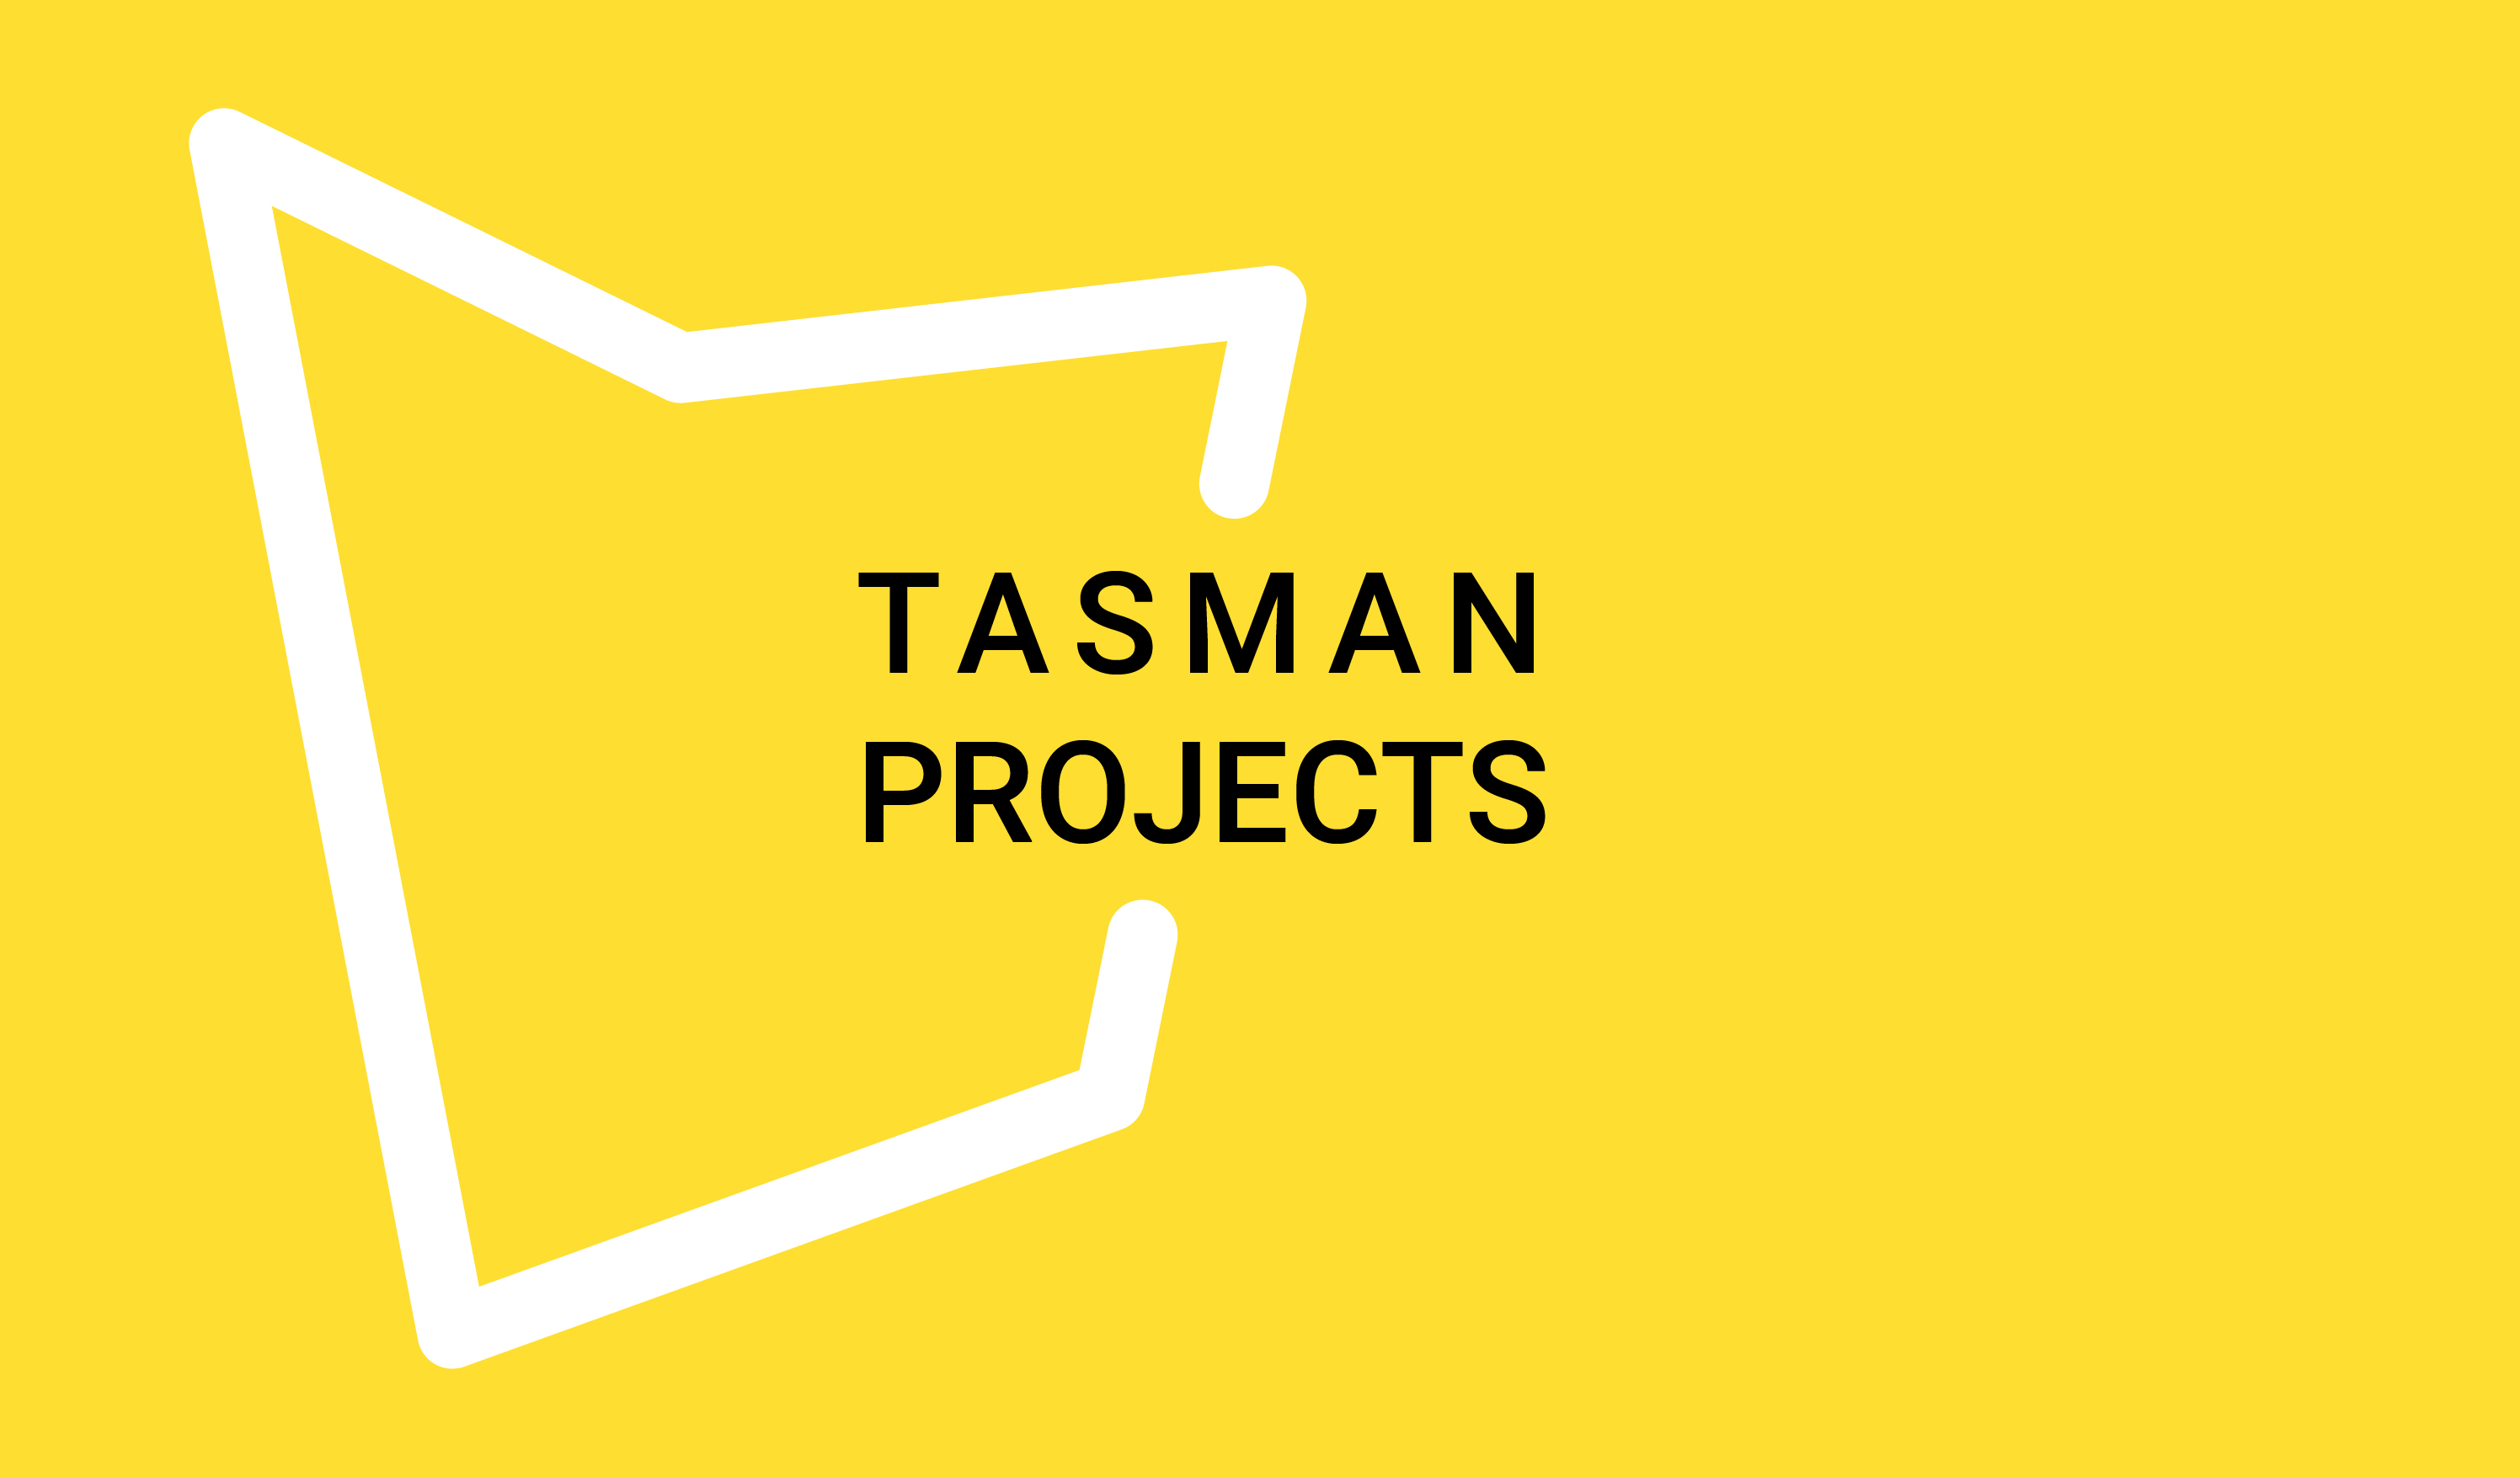 Tasman Projects